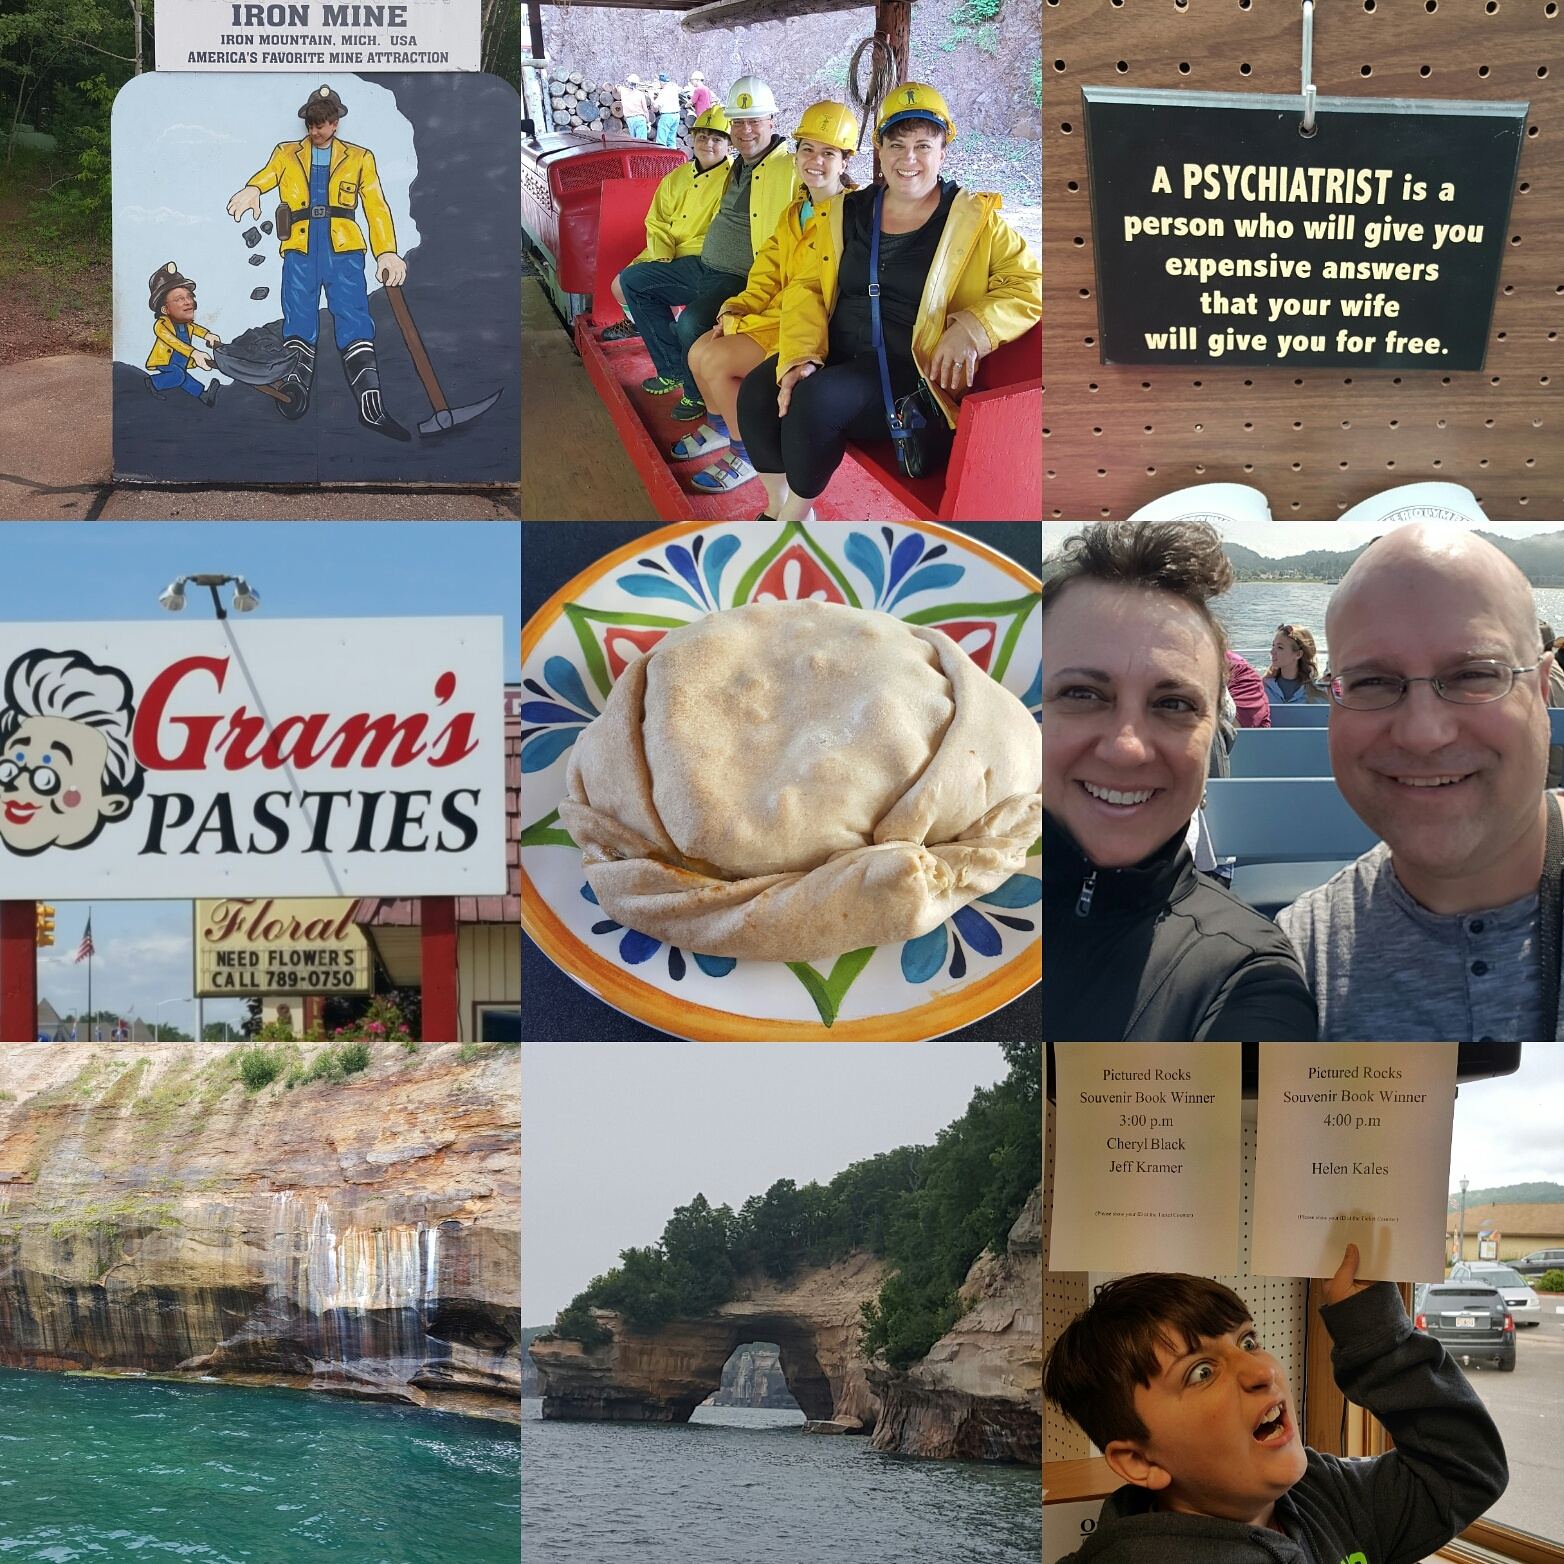 Day 5. Pictured Rocks and more.